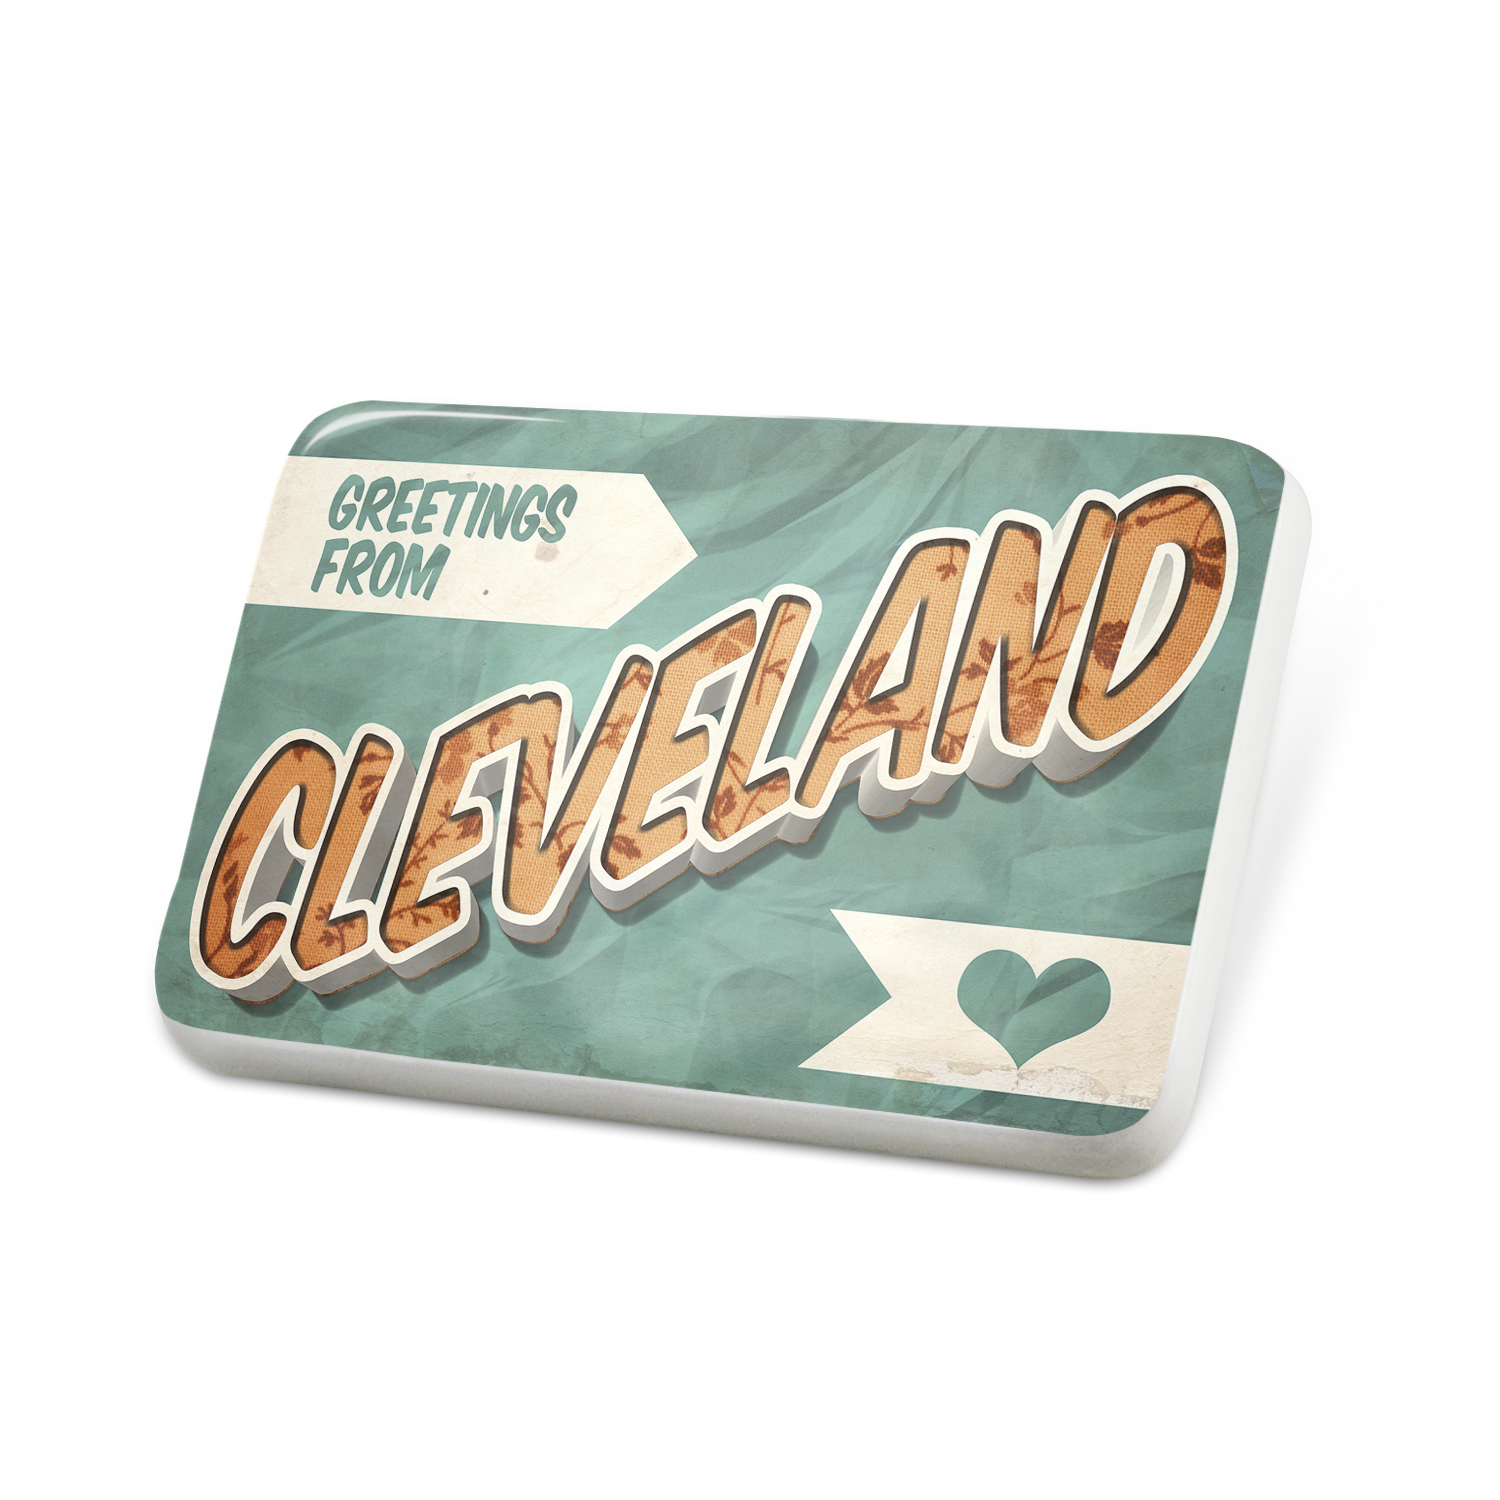 Porcelein Pin Greetings from Cleveland, Vintage Postcard Lapel Badge – NEONBLOND